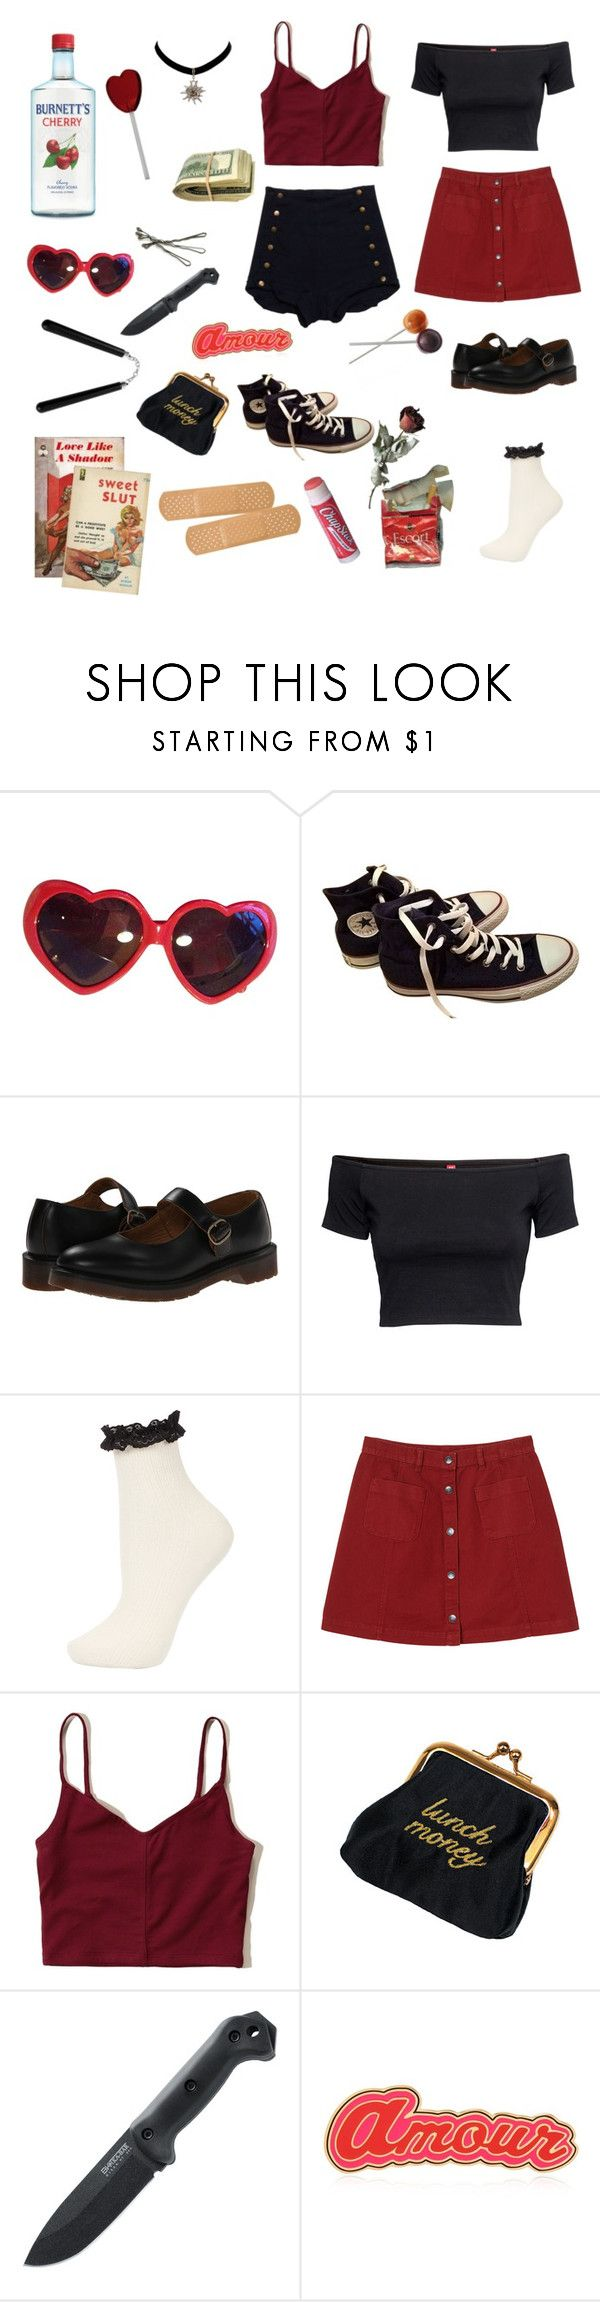 """""""Hell's Kitchen Nymphet"""" by artybee ❤ liked on Polyvore featuring Moschino, Converse, Dr. Martens, H&M, Topshop, Monki, Hollister Co., Current/Elliott, Chapstick and BOBBY"""